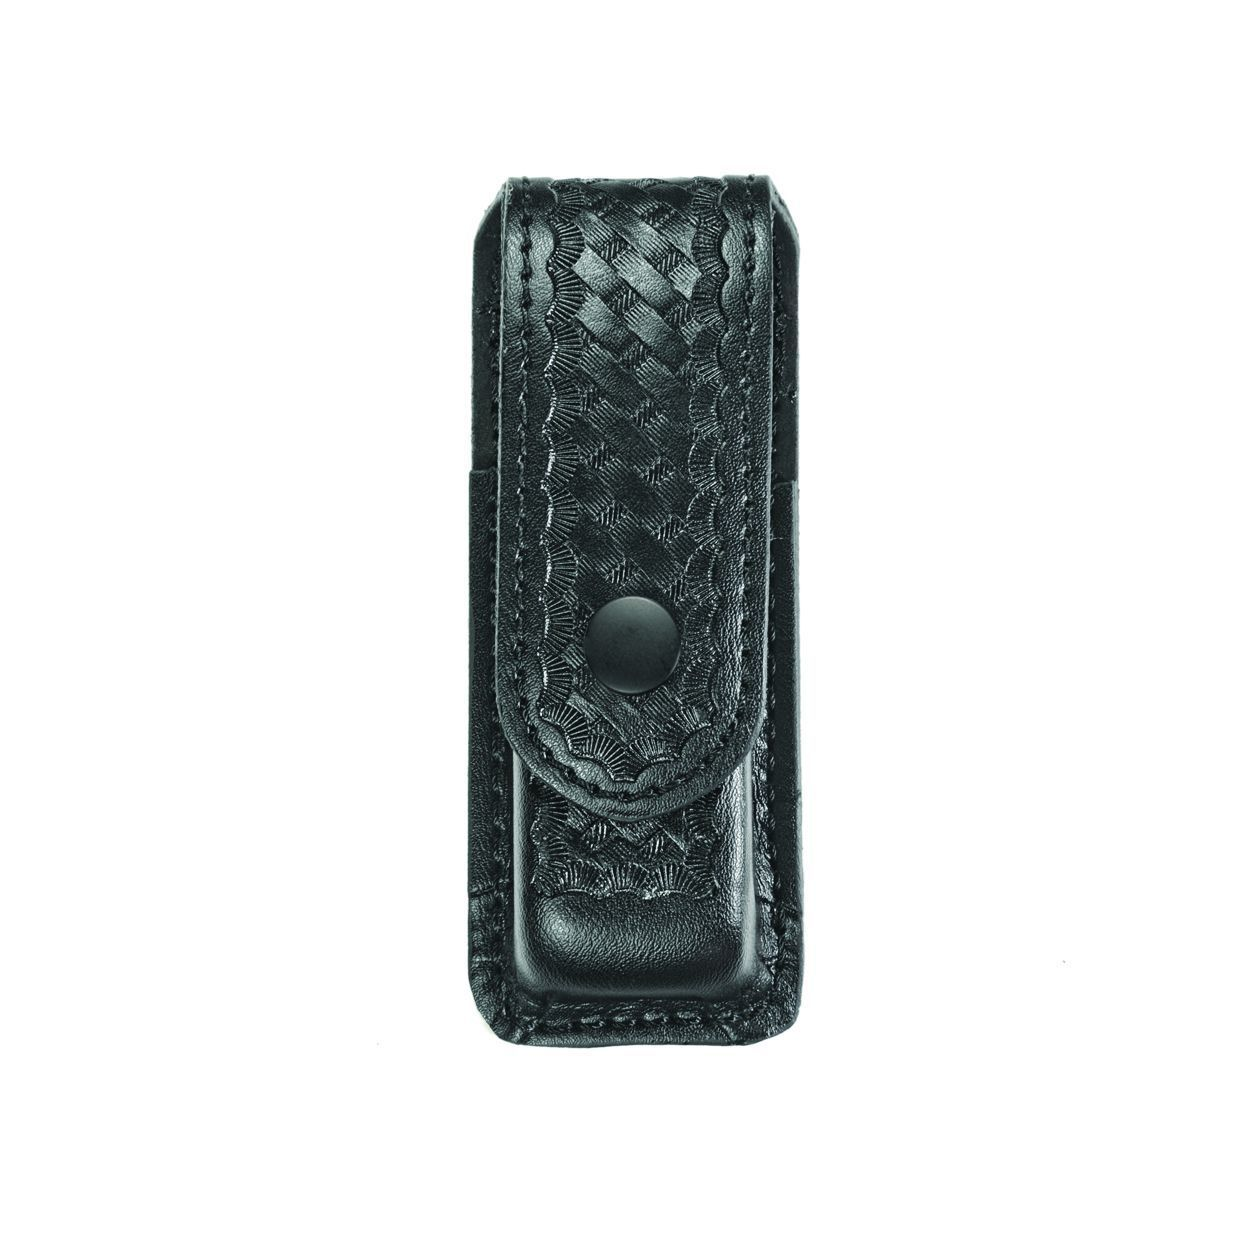 Single Magazine (or Knife) Case, Medium, AirTek, BW, Black Snap-